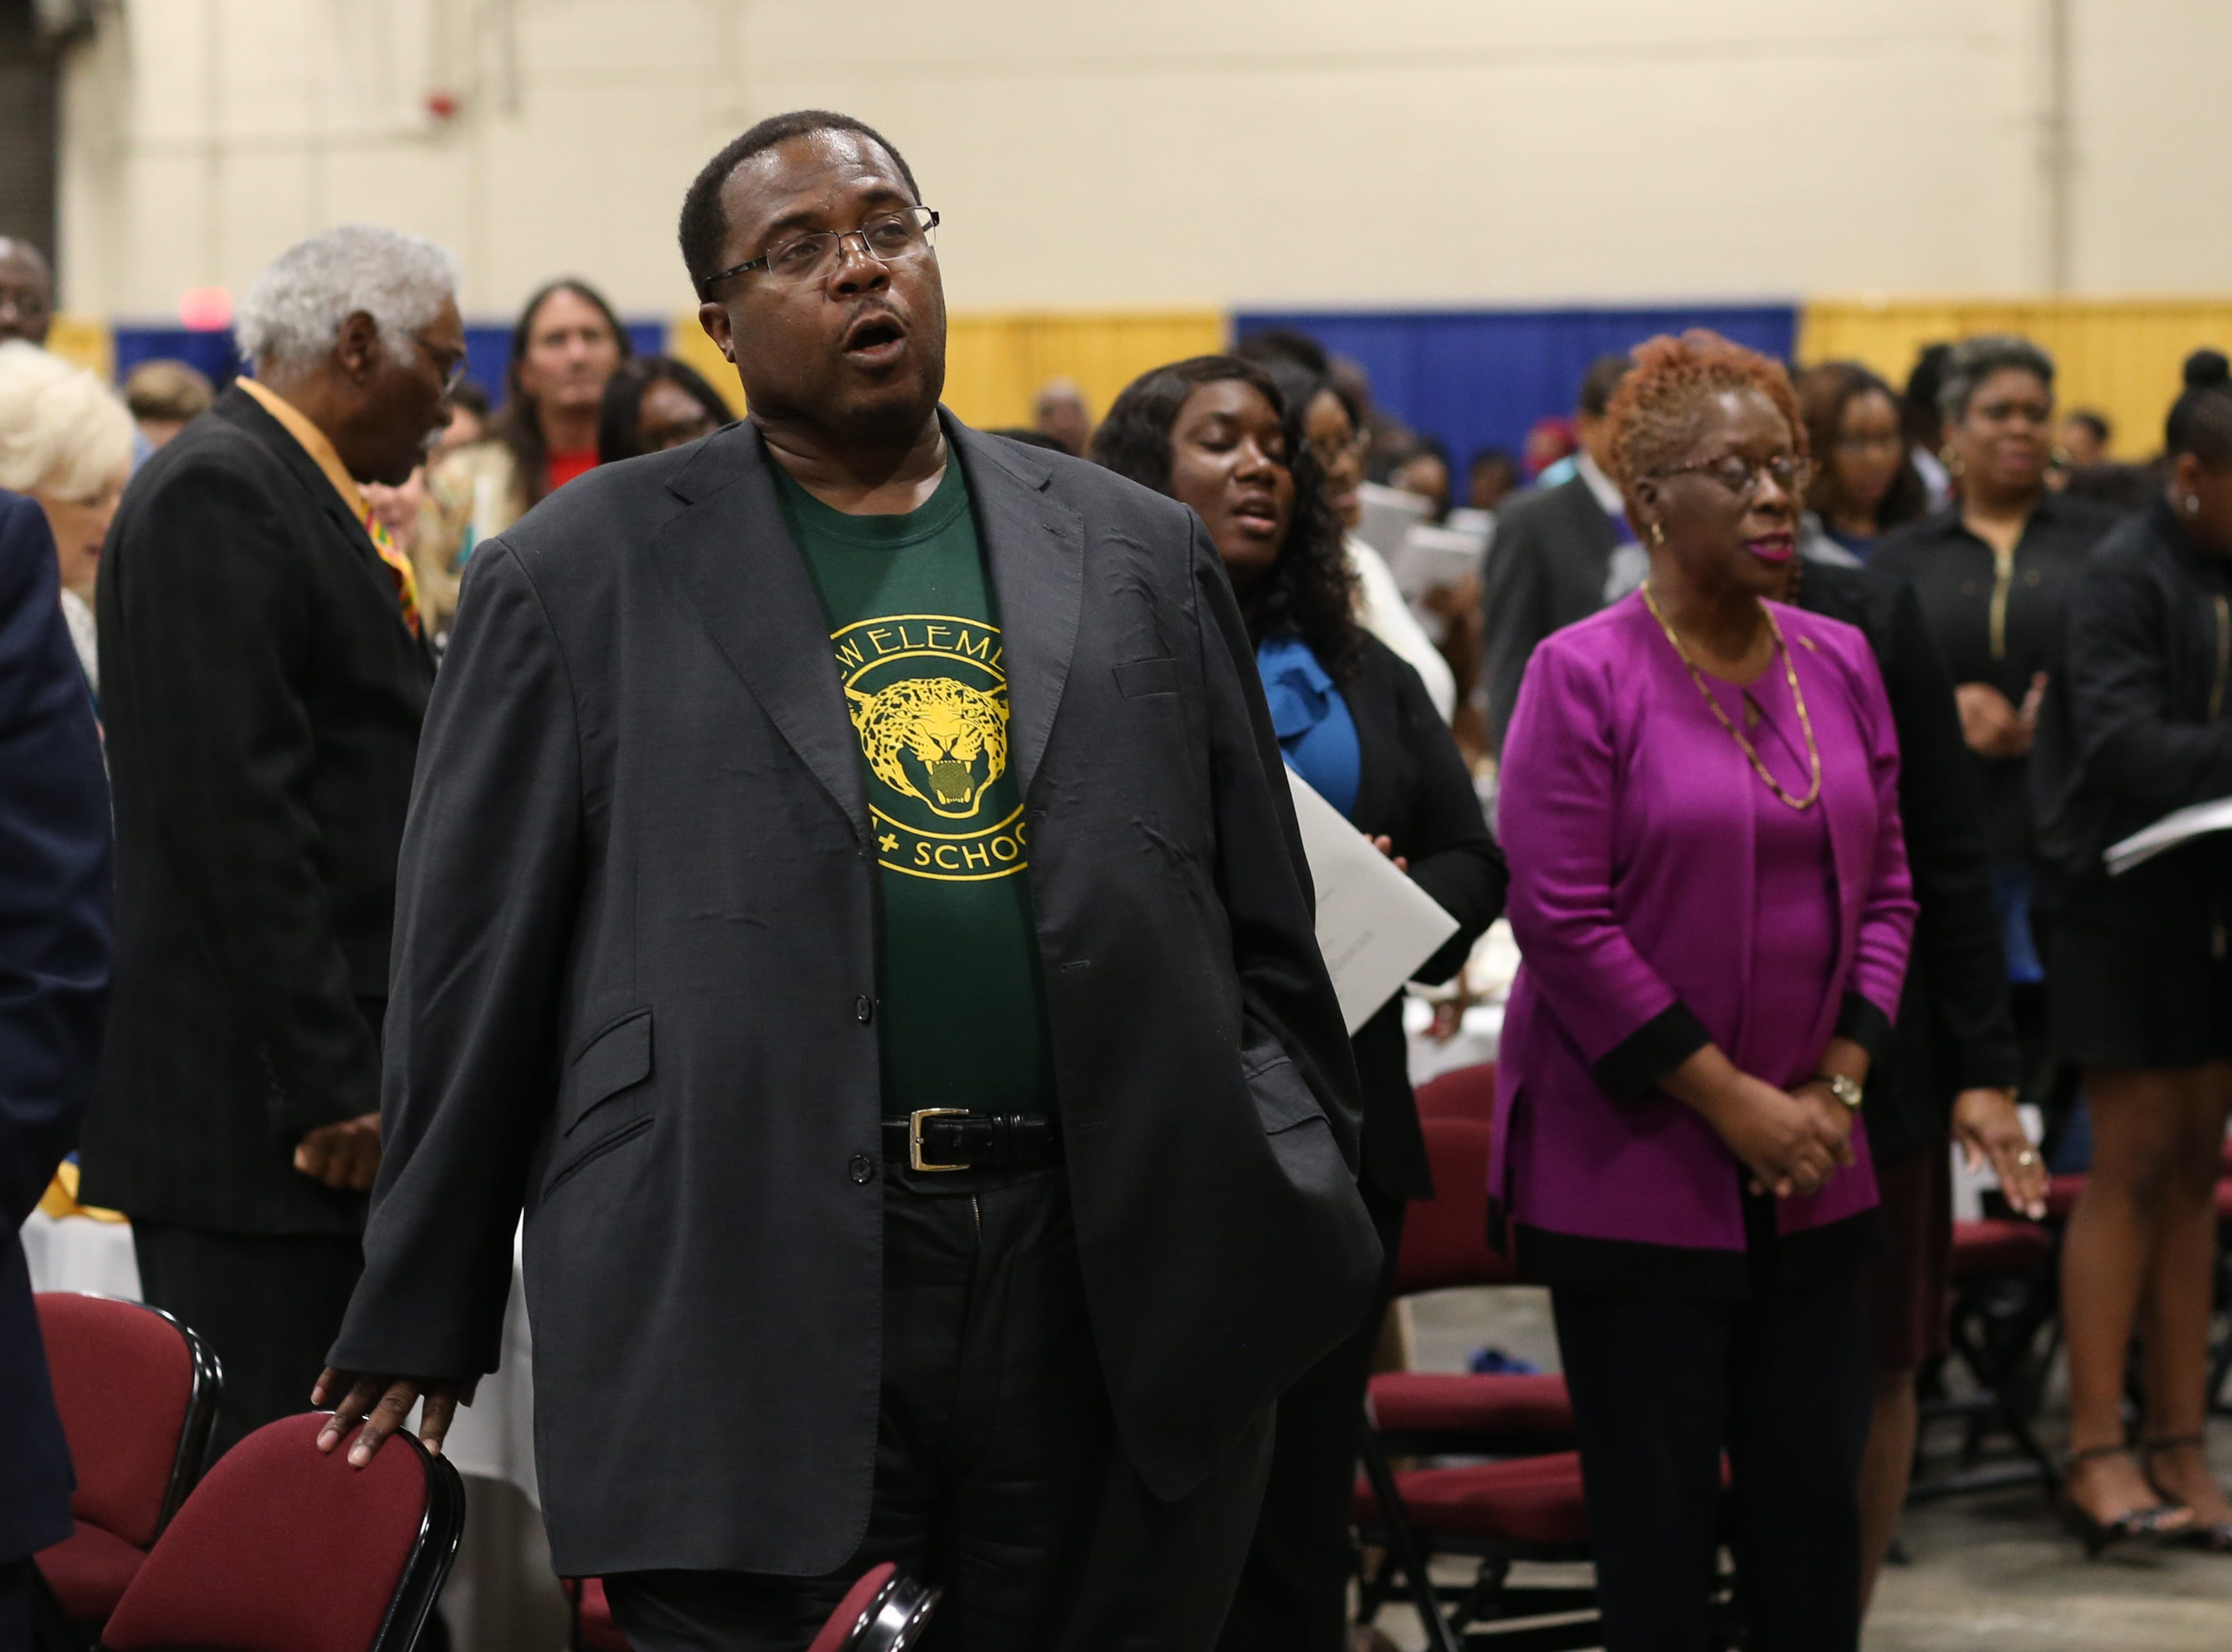 "Leon County School Board Member Darryl Jones sings along to the Negro National Anthem ""Lift Every Voice and Sing"" played during the Martin Luther King Jr. commemorative breakfast at Donald L. Tucker Civic Center Friday, Jan. 18, 2019."